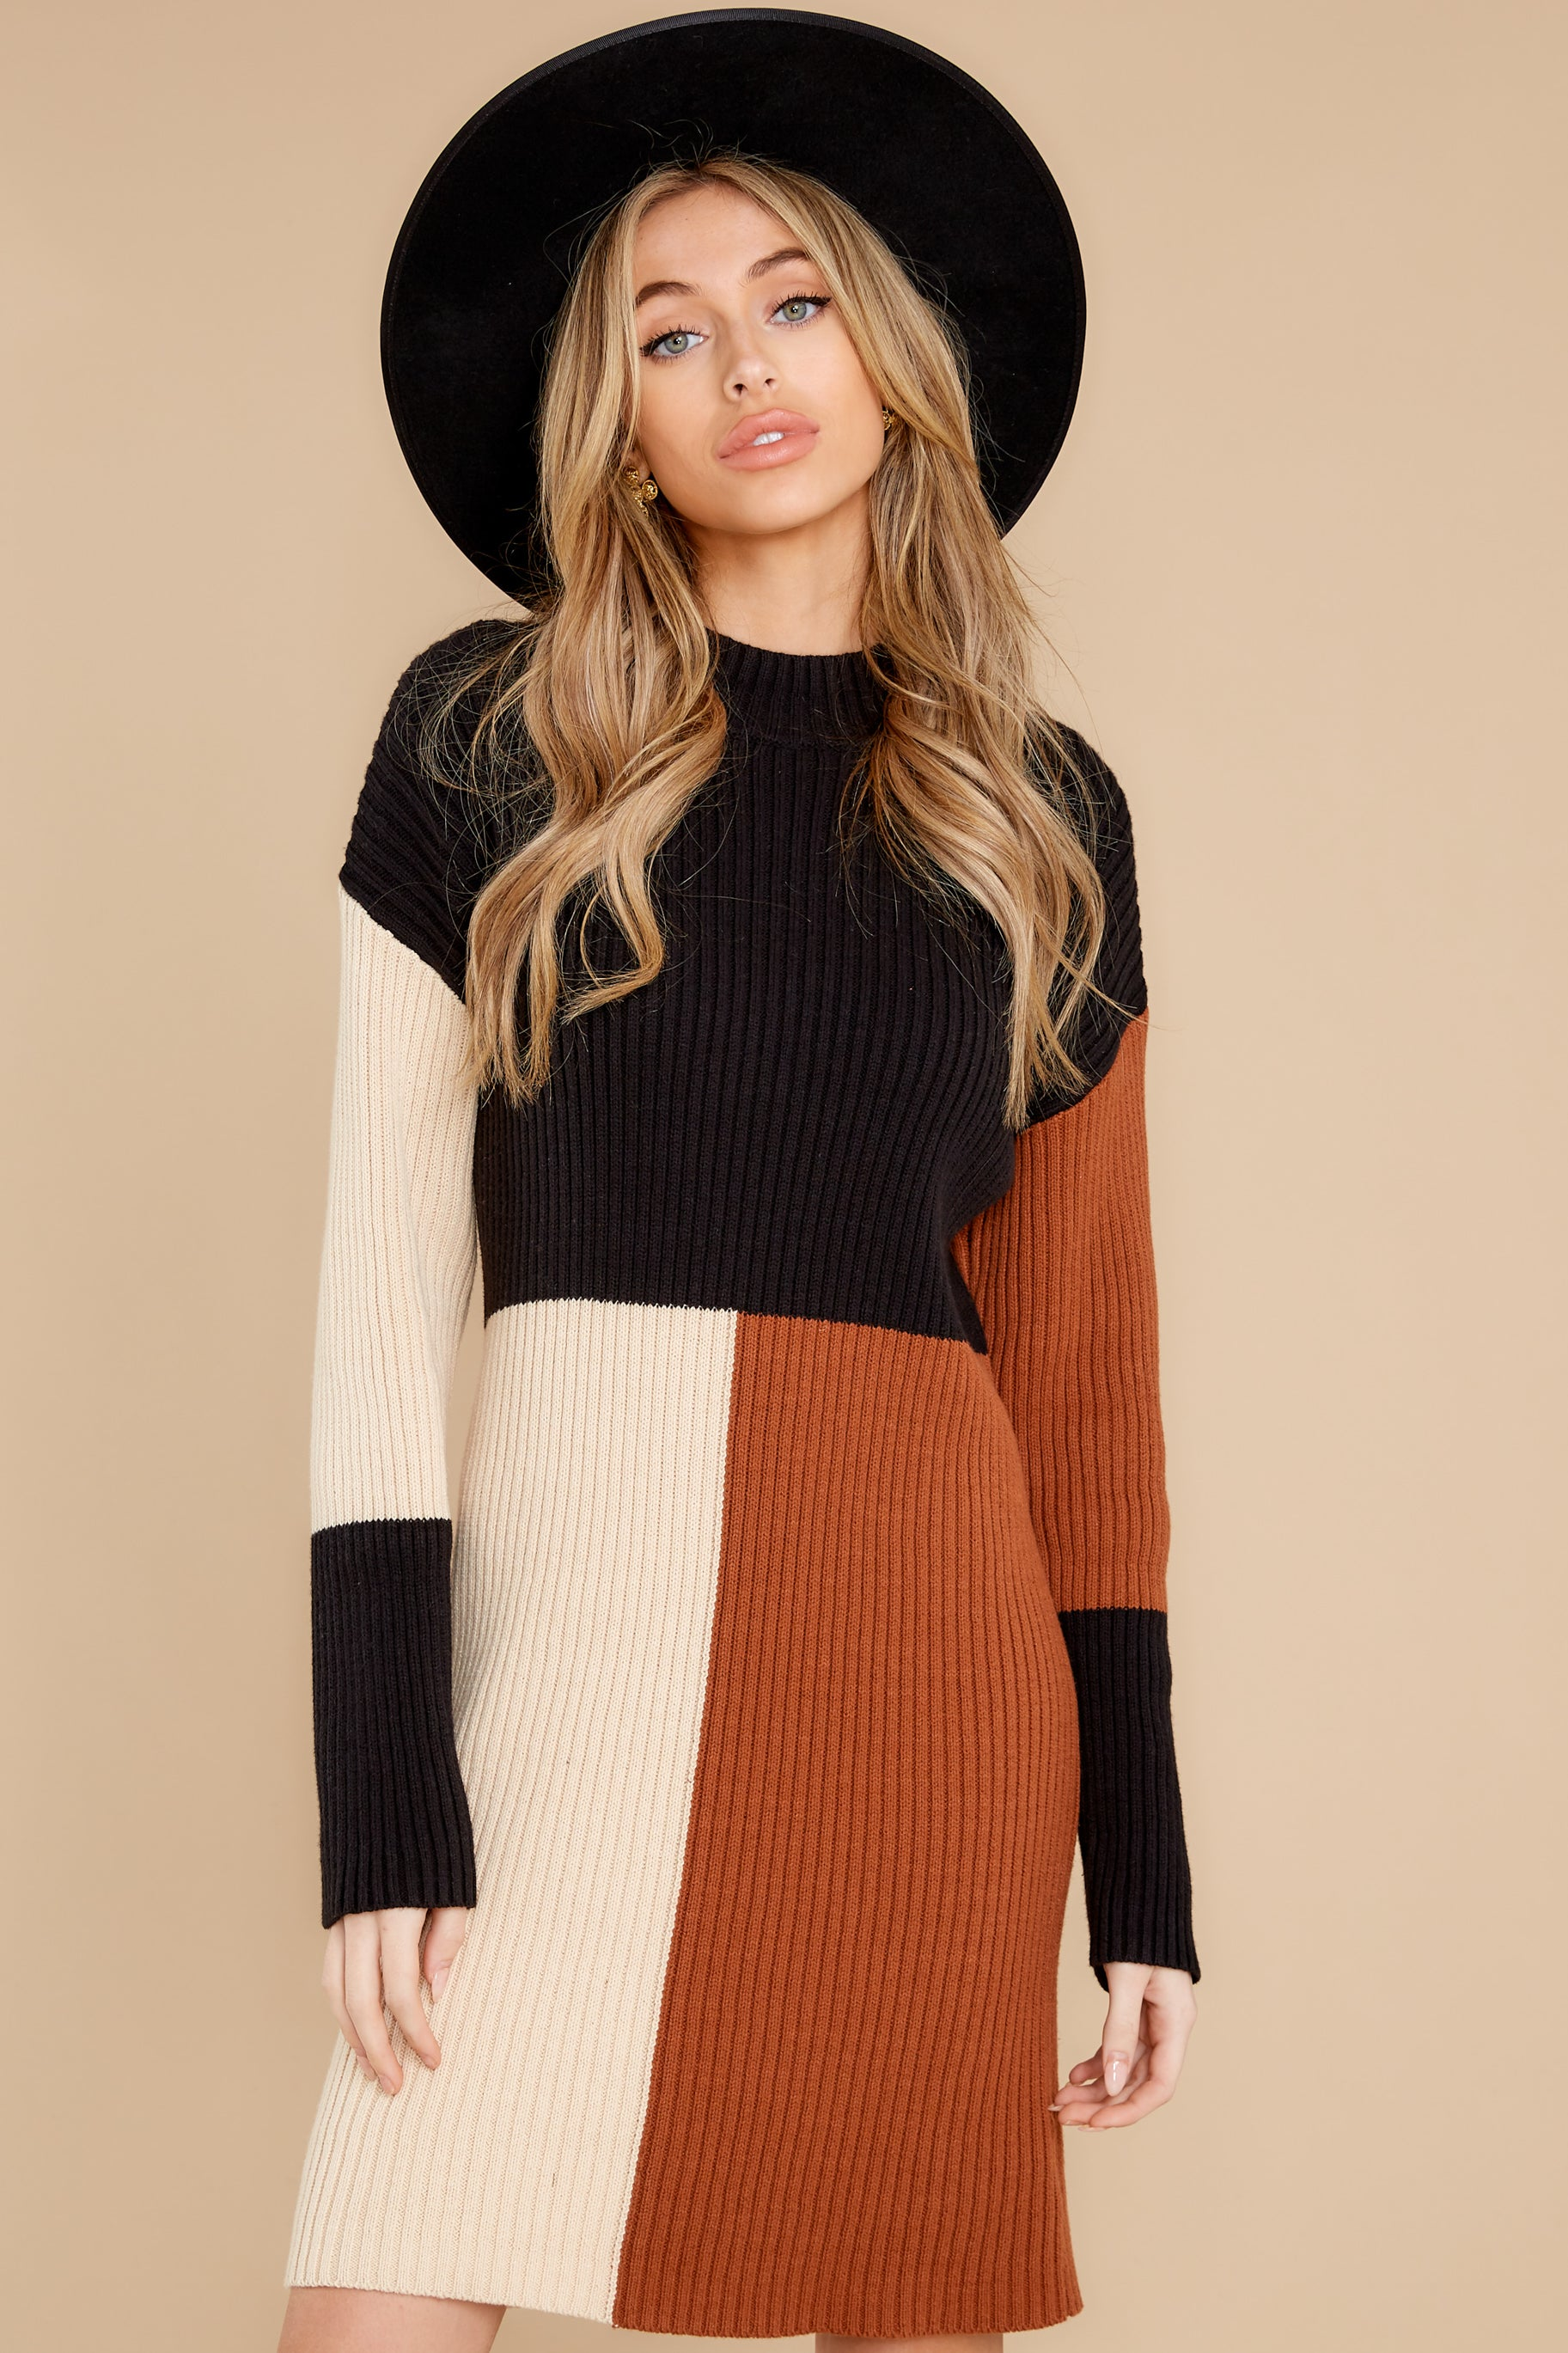 7 Around The Bend Black And Camel Sweater Dress at reddress.com